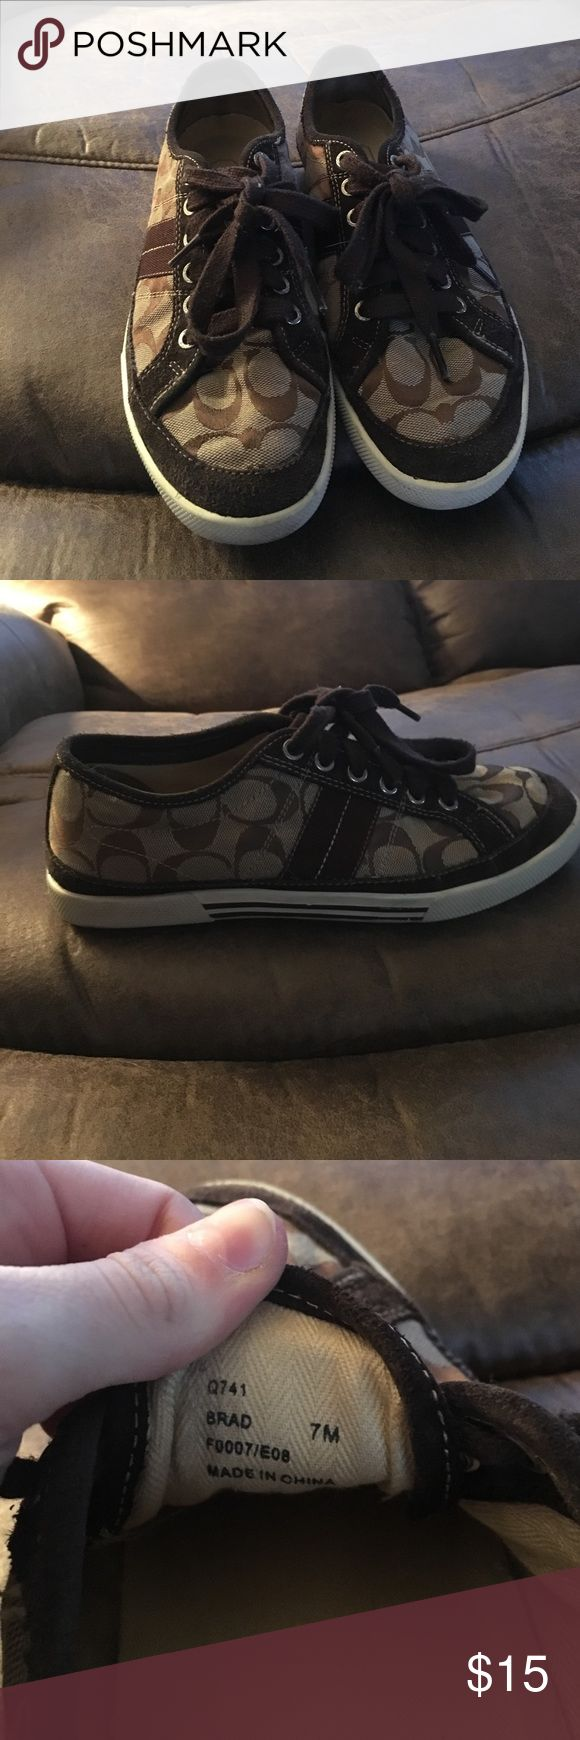 AUTHENTIC* Coach Tennis Shoes These Coach shoes are so cute and comfy. I loved them, and they are still in good condition!  They say size 7 on the inside but I bought them when I was a size 8 and they fit. So size 7-8 they will fit! Coach Shoes Sneakers